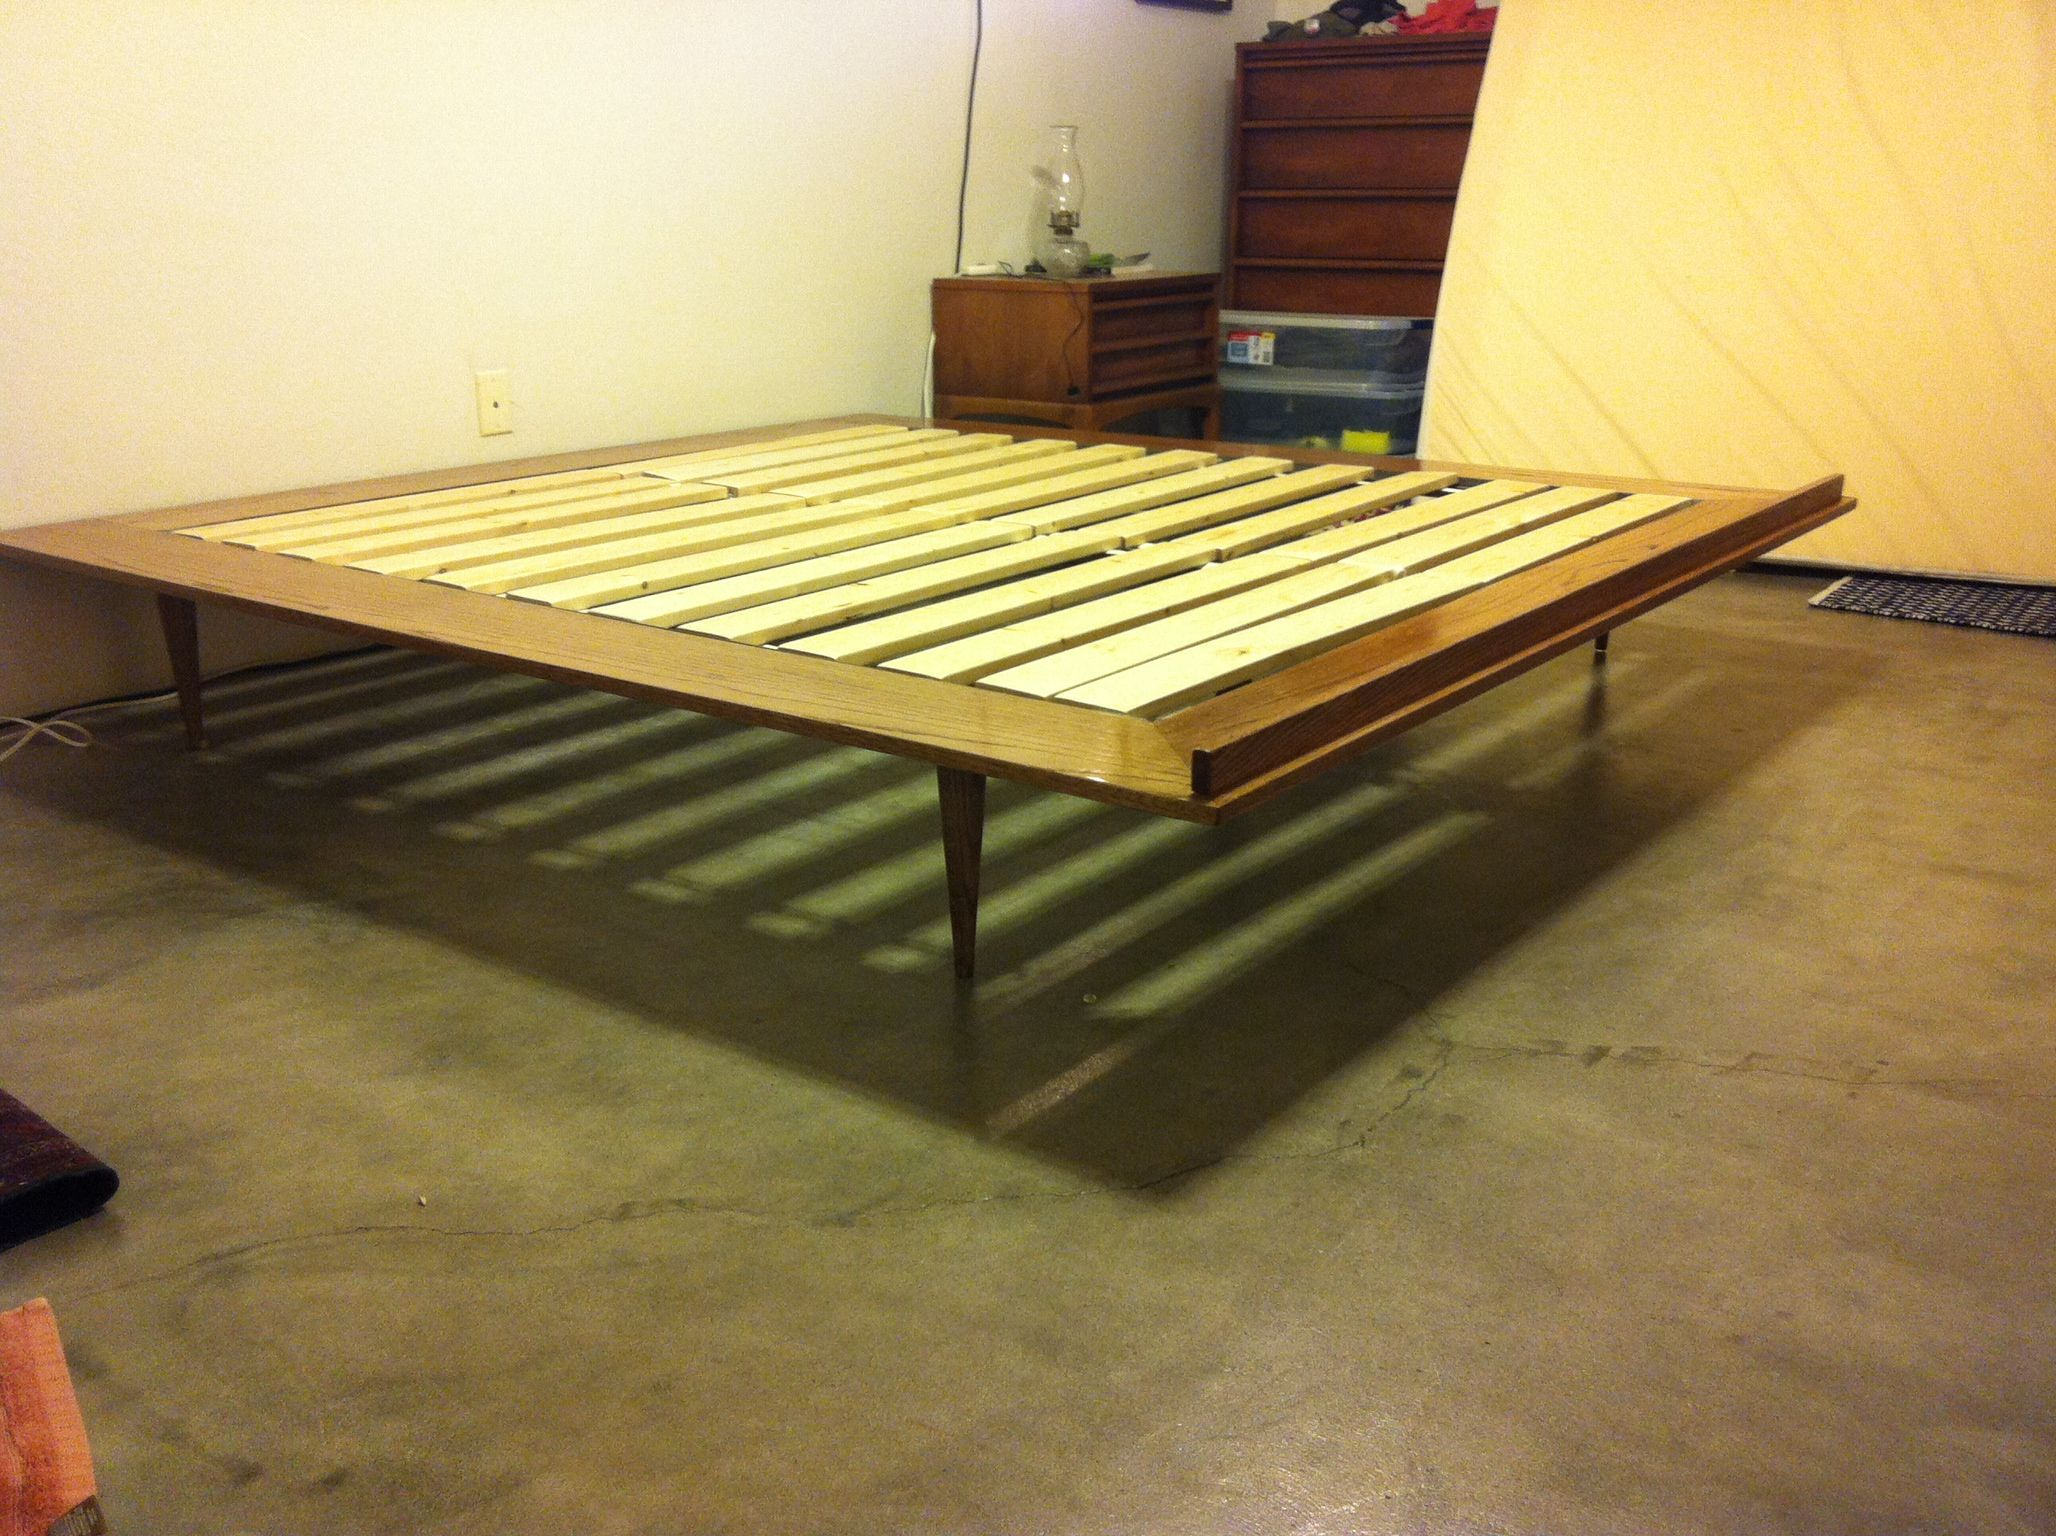 Dwr S American Modern Bed Our Diy Project Diy Platform Bed Diy